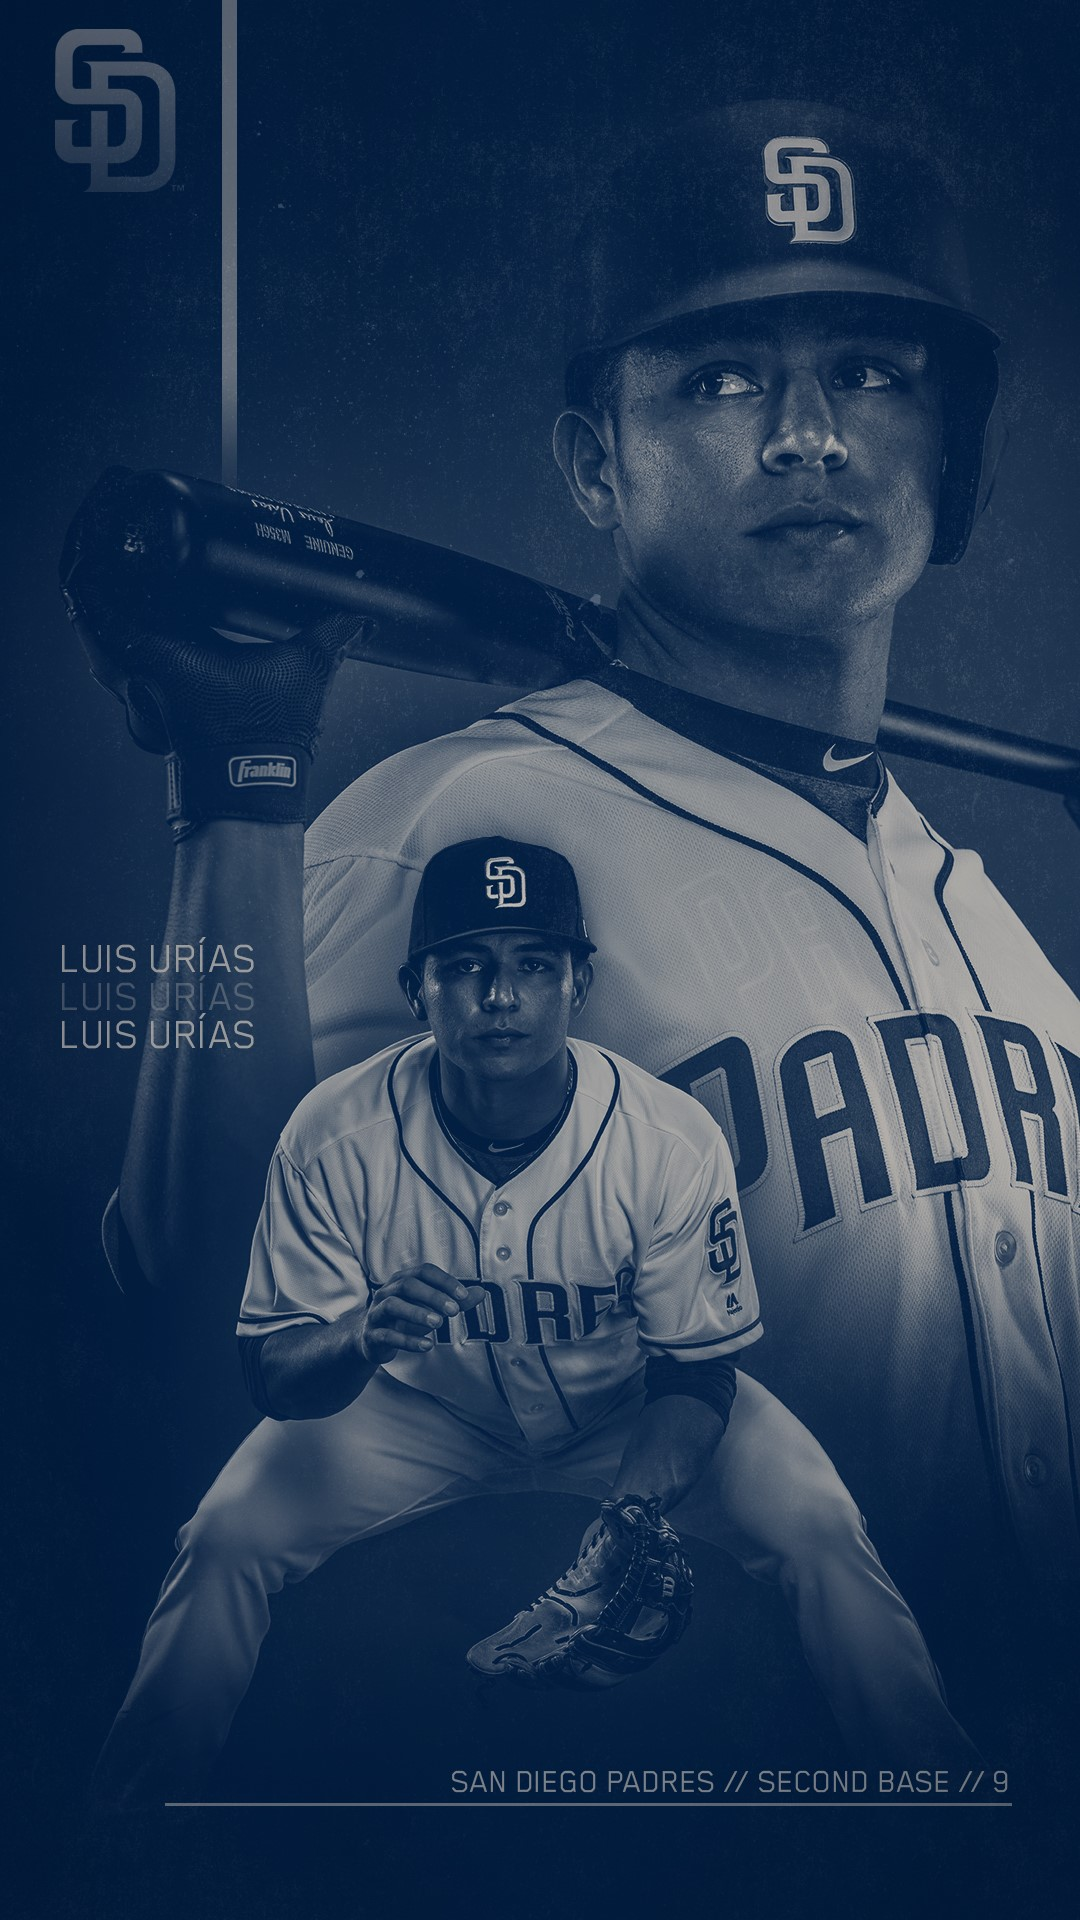 San Diego Padres Iphone Wallpaper Posted By John Sellers